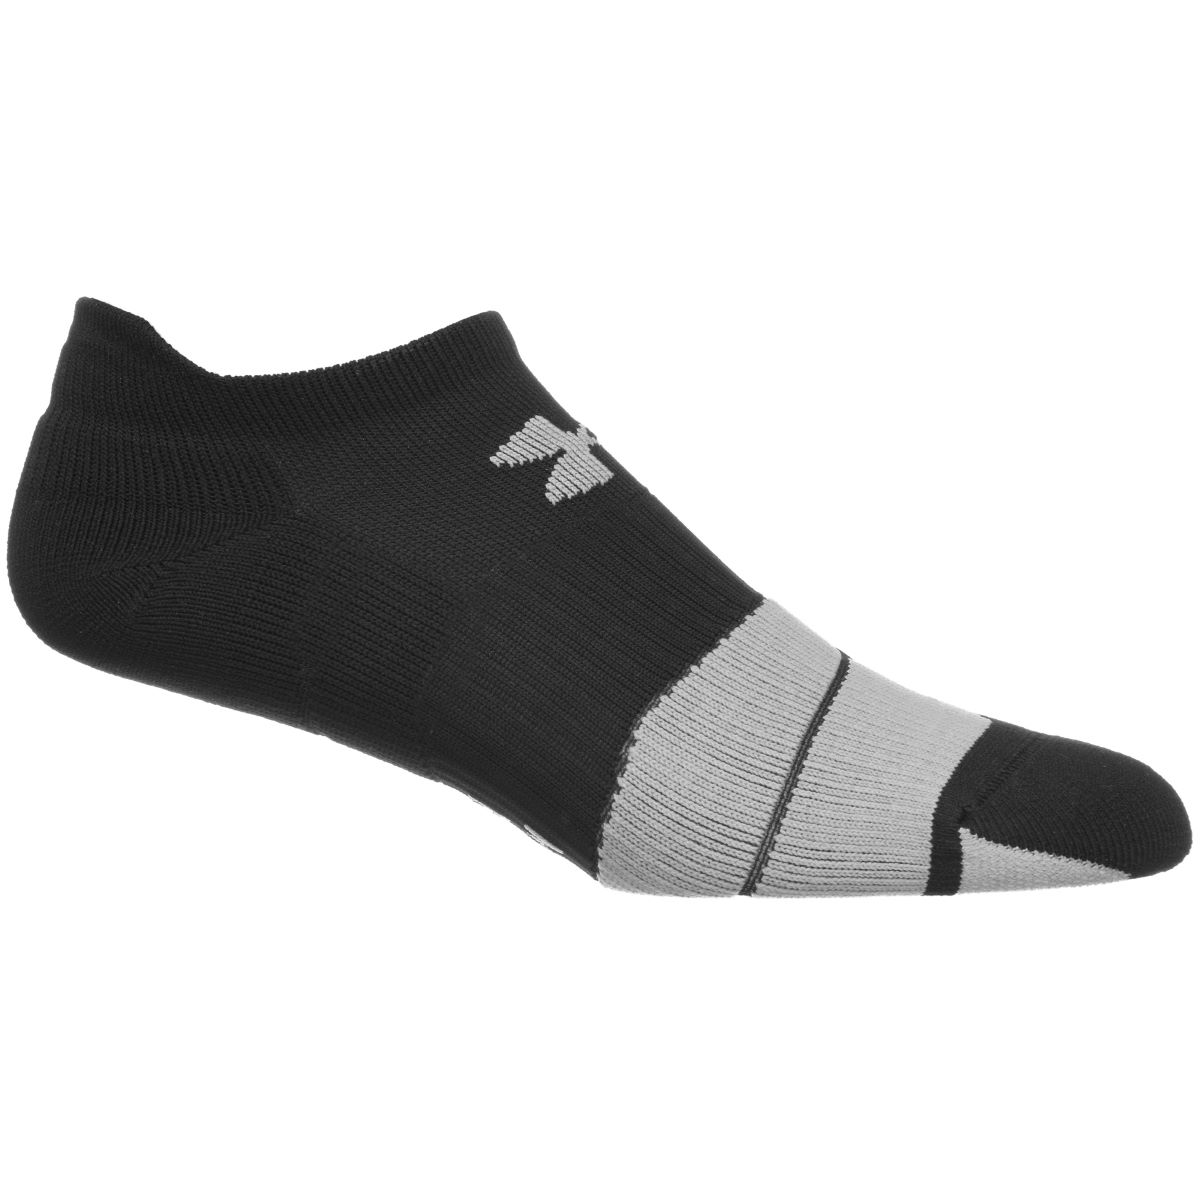 Chaussettes Under Armour Run Cushion NoShow - M Black / Graphite